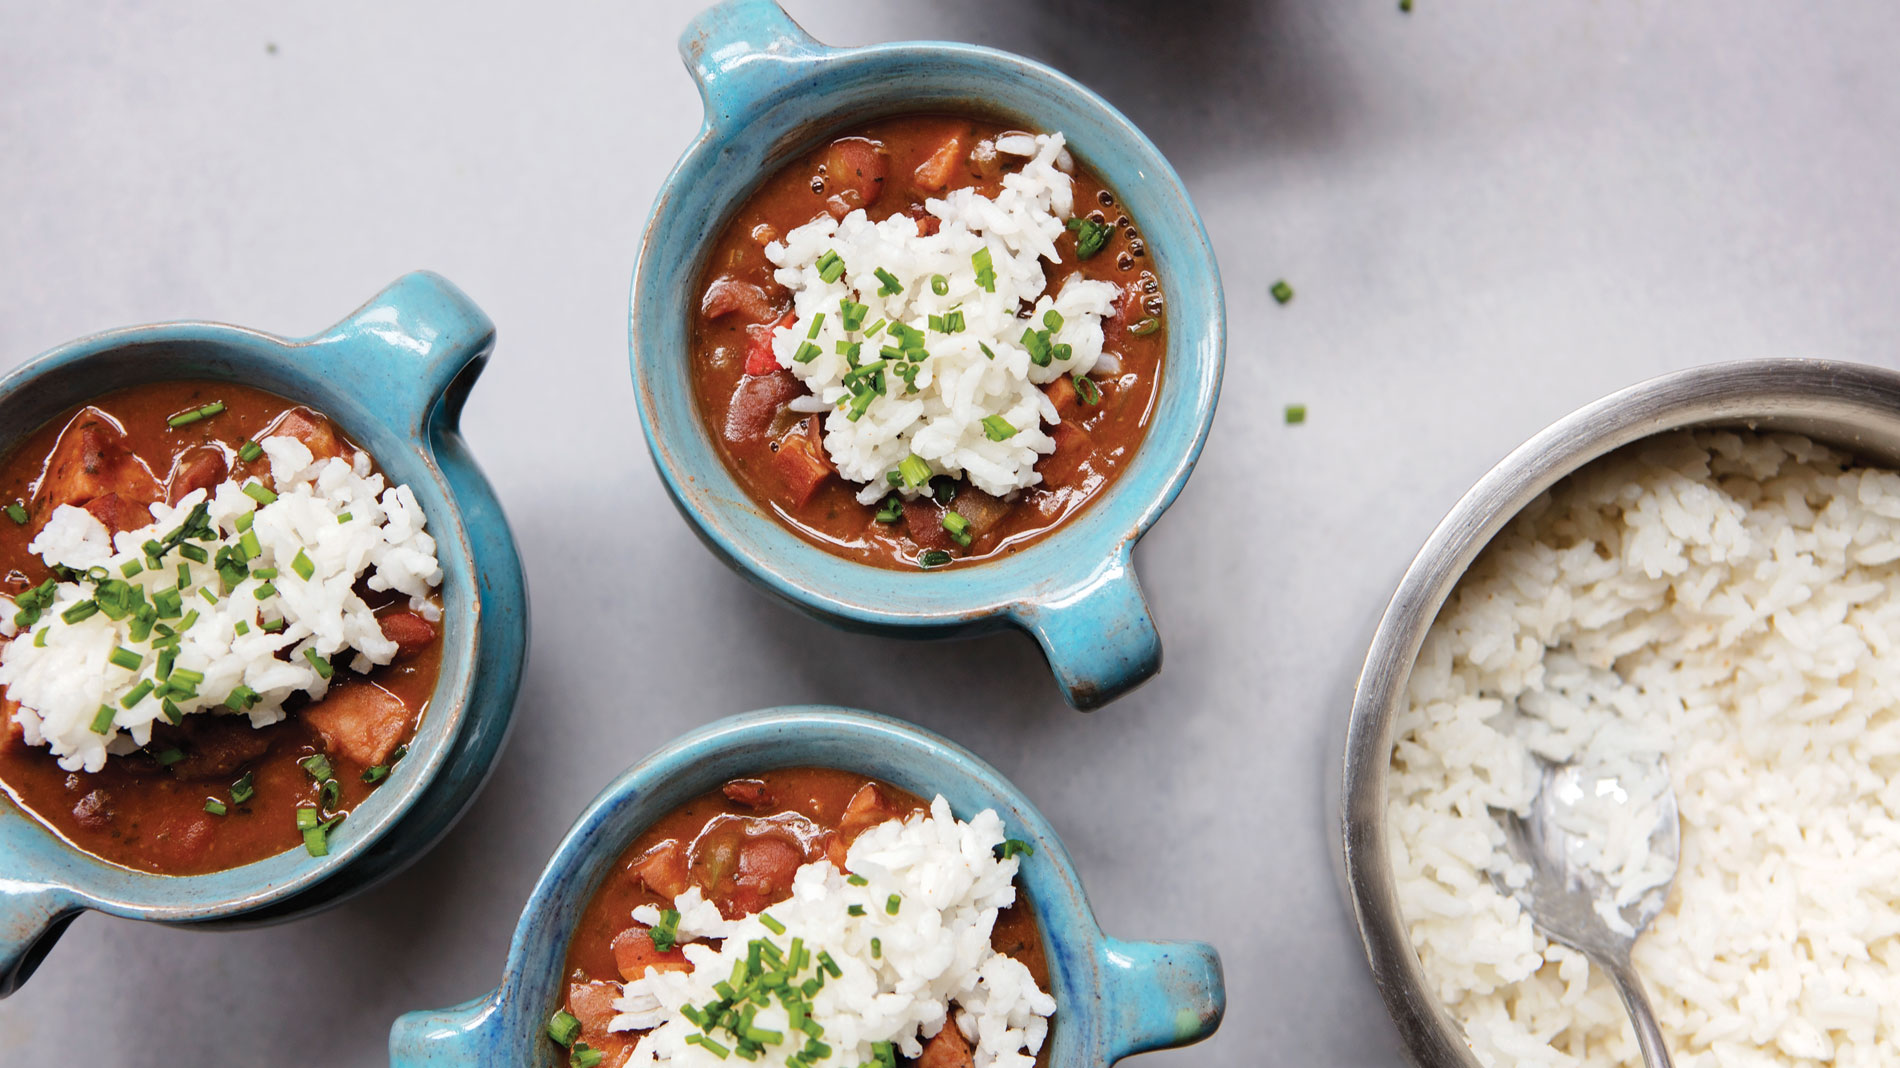 small bowls of red beans and rice